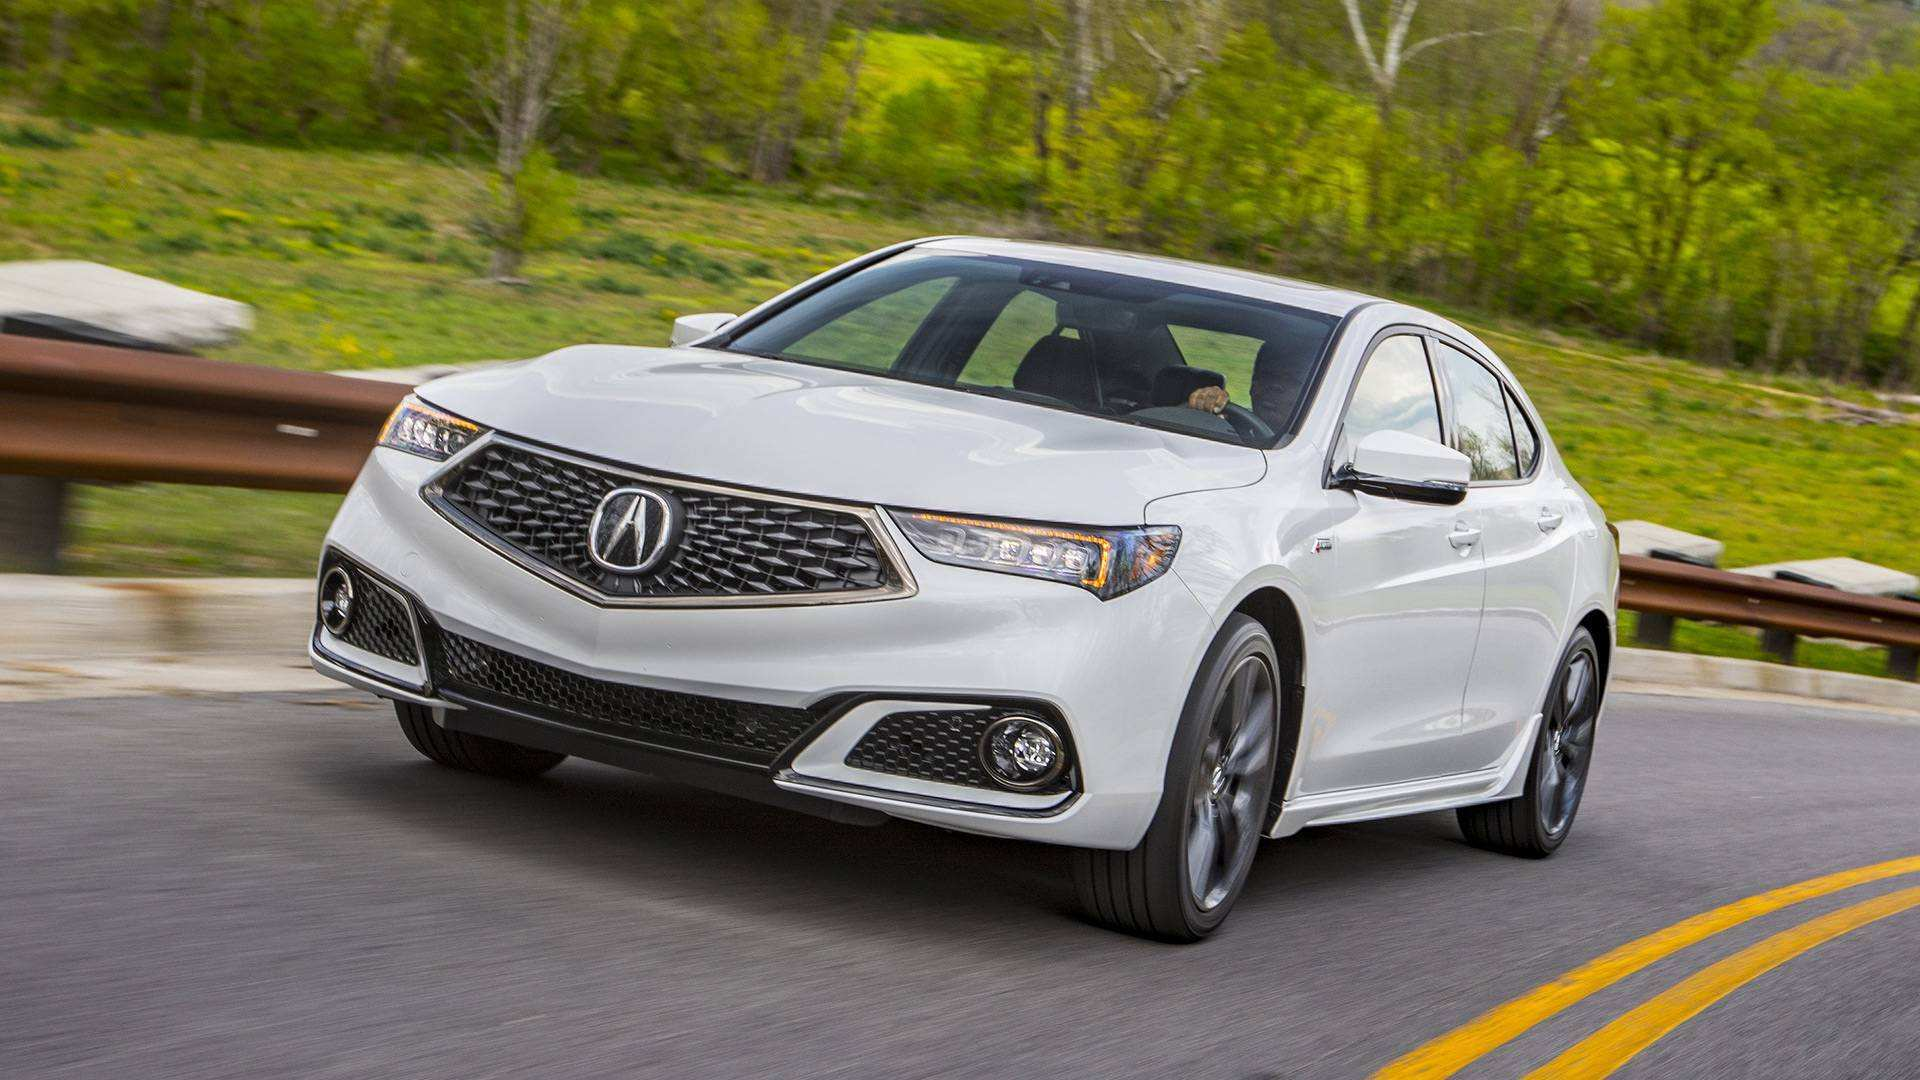 87 New 2019 Acura Pictures Ratings